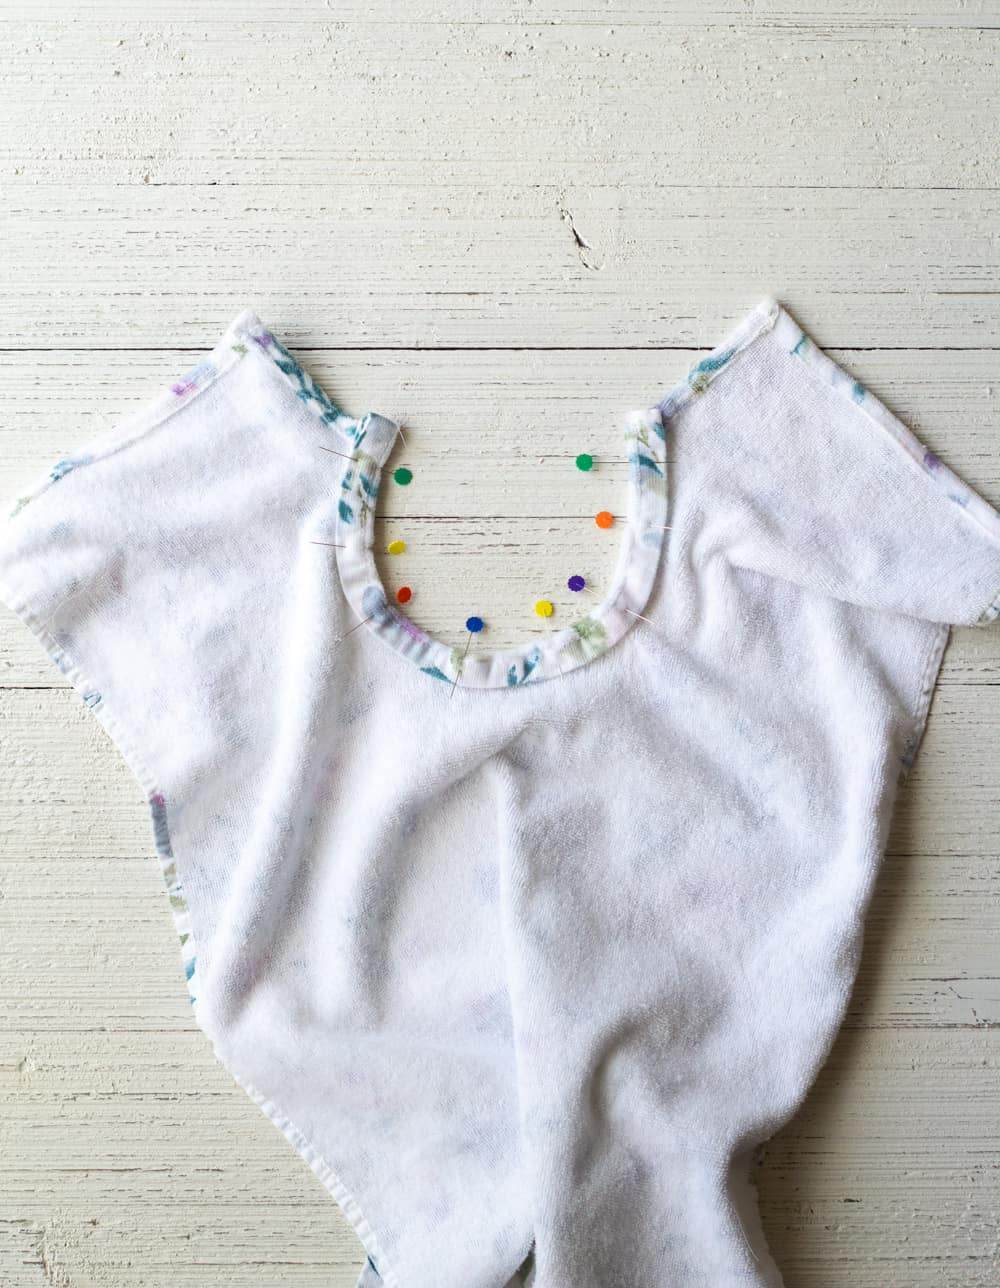 Pinning a collar down onto a kitchen towel baby bib.